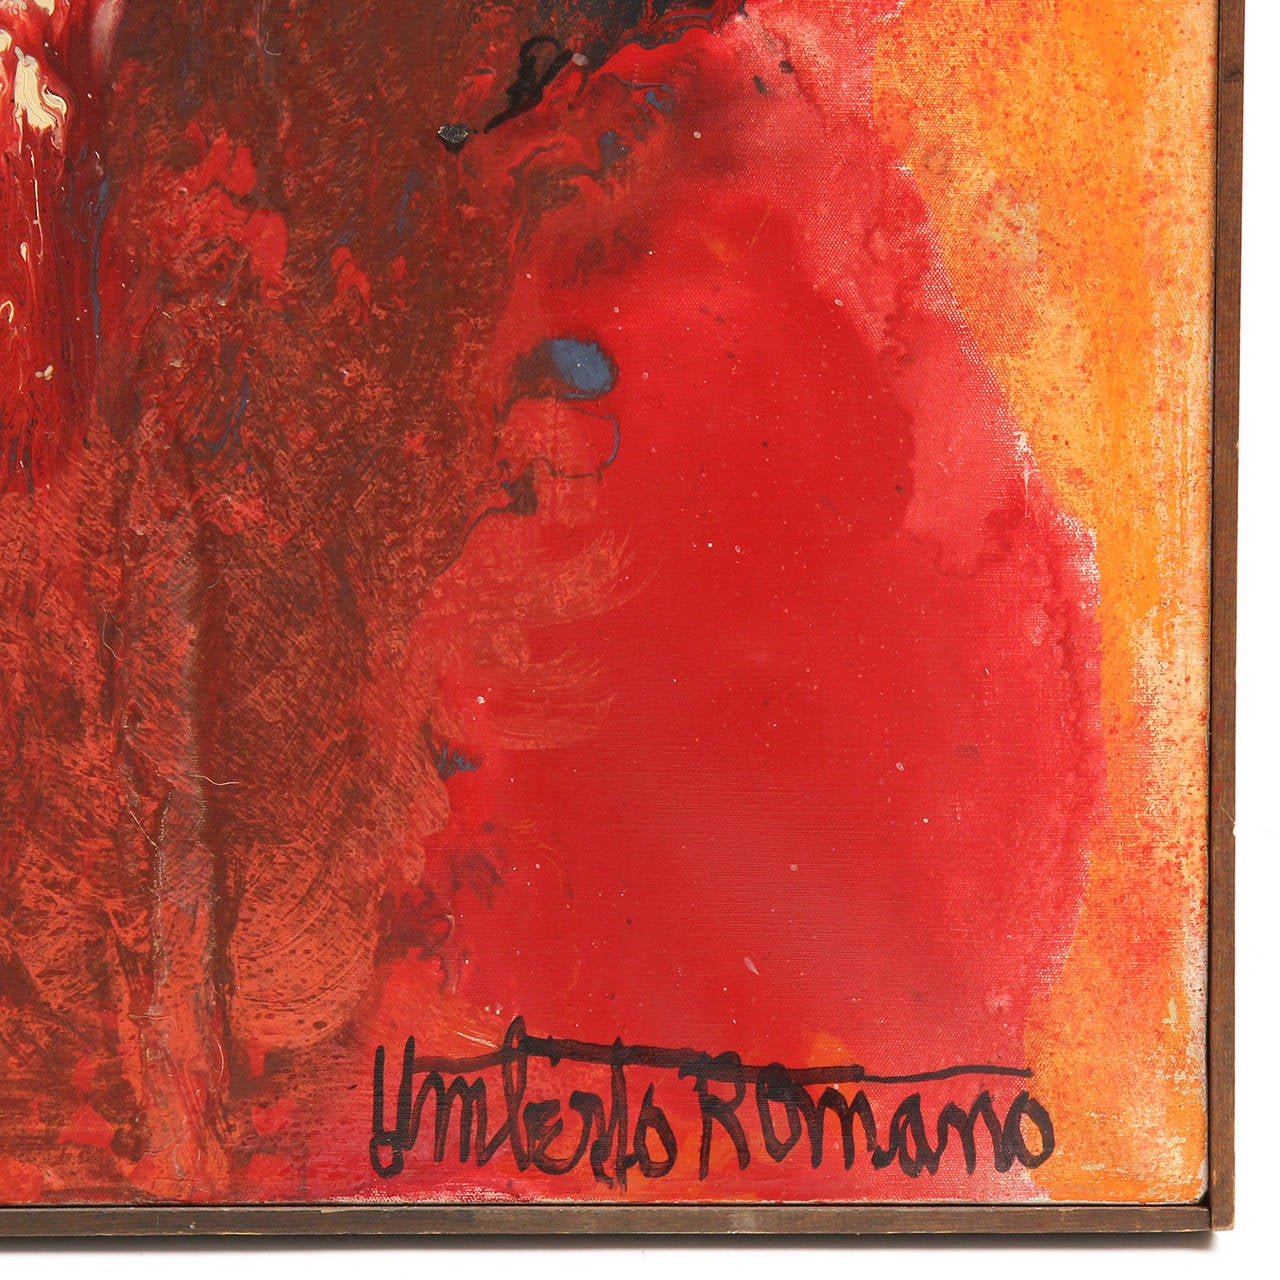 American Painting by Umberto Romano For Sale